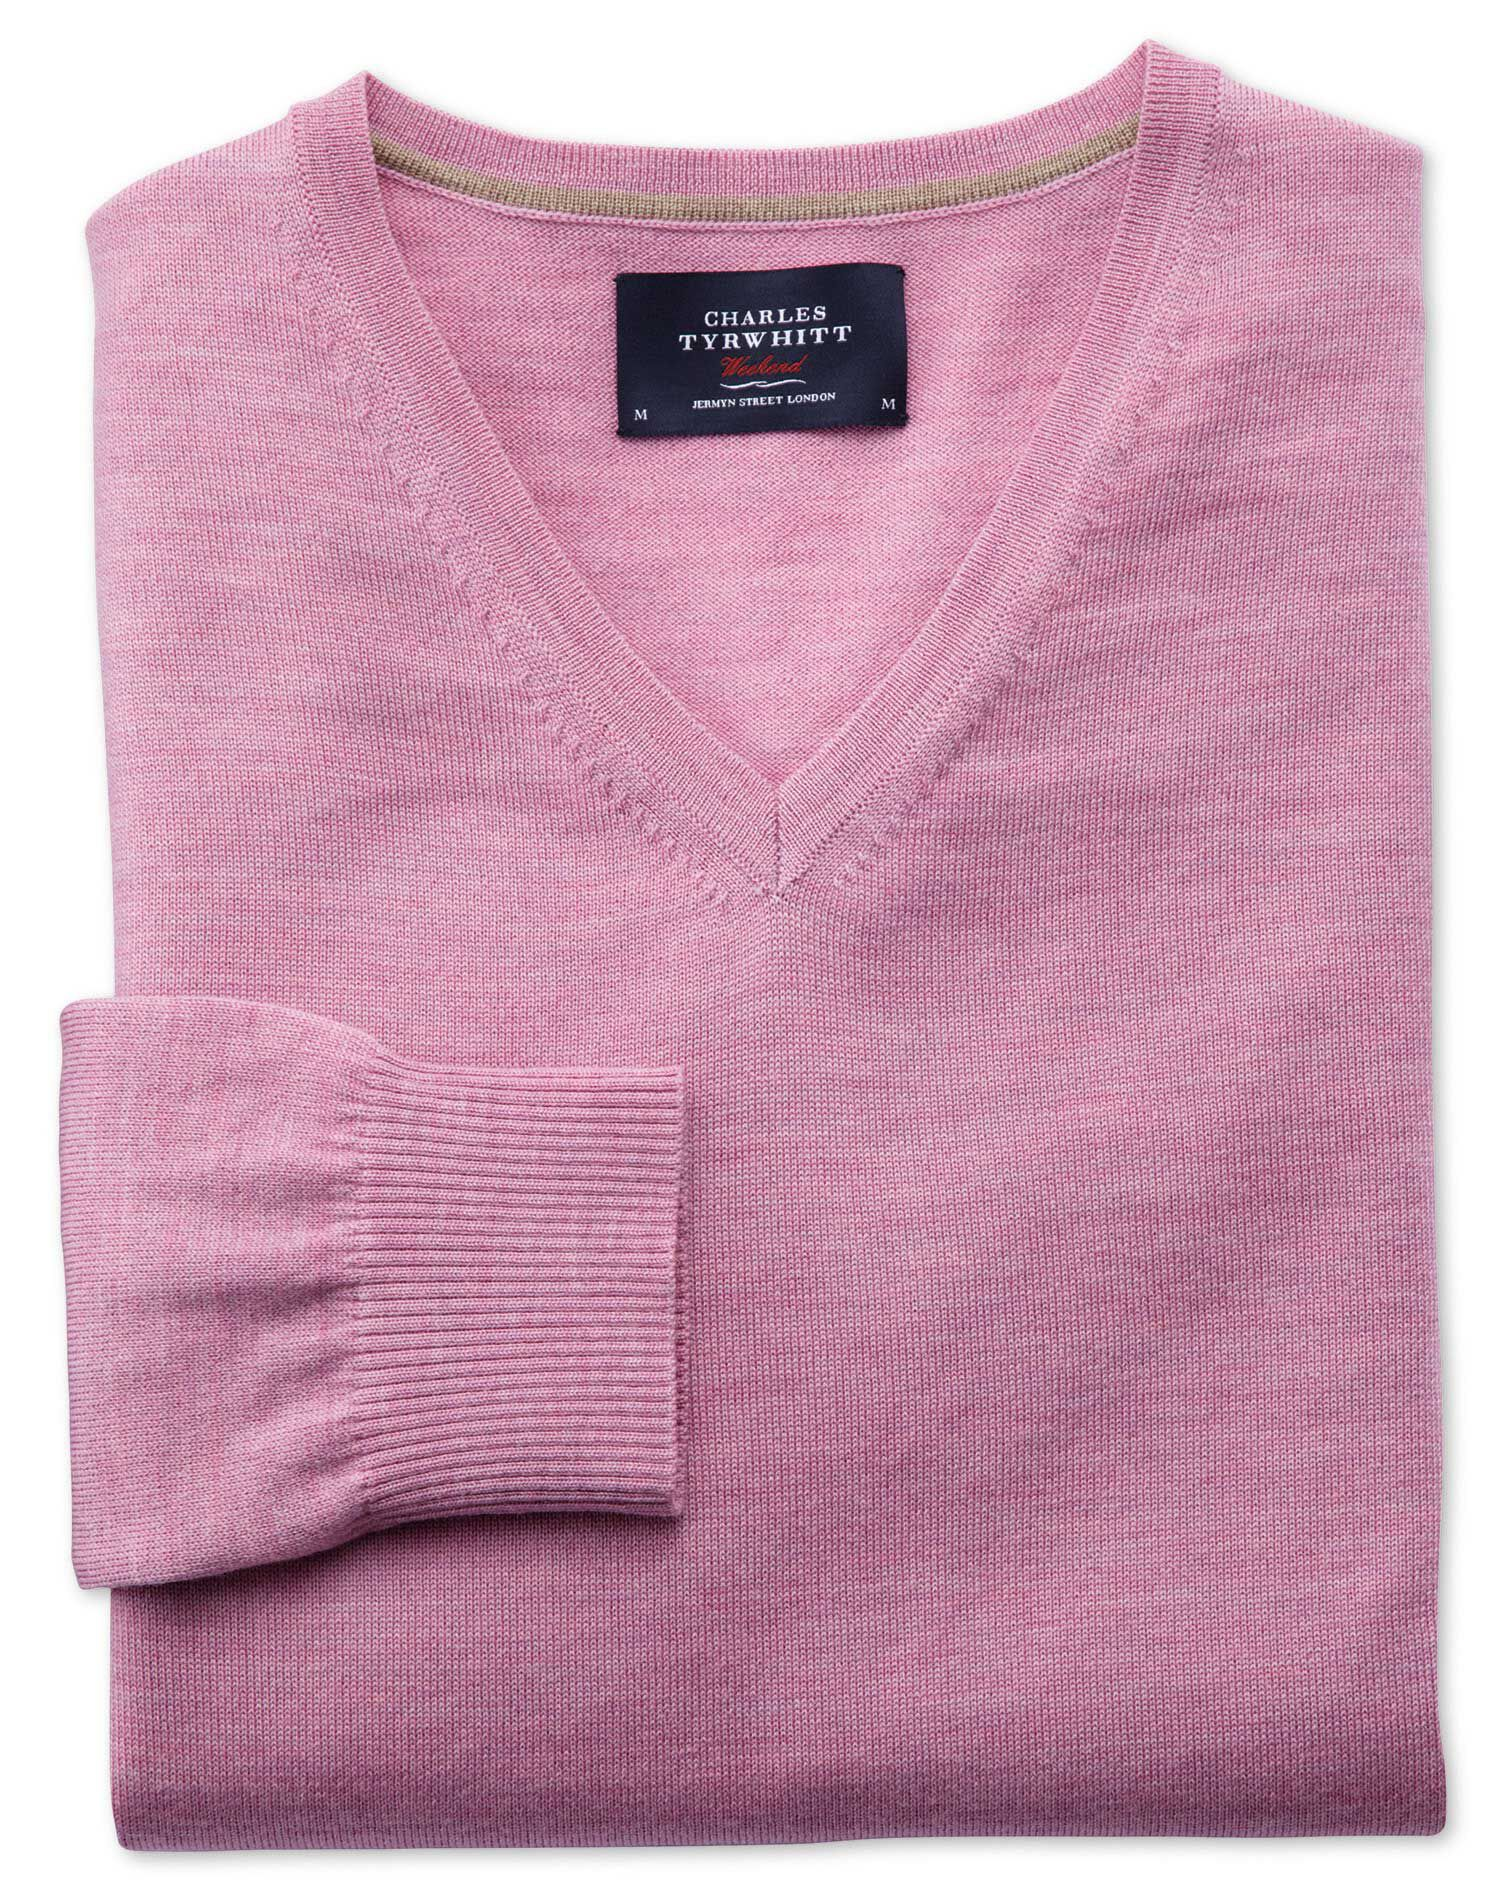 Light Pink Merino Wool V-Neck Jumper Size XL by Charles Tyrwhitt